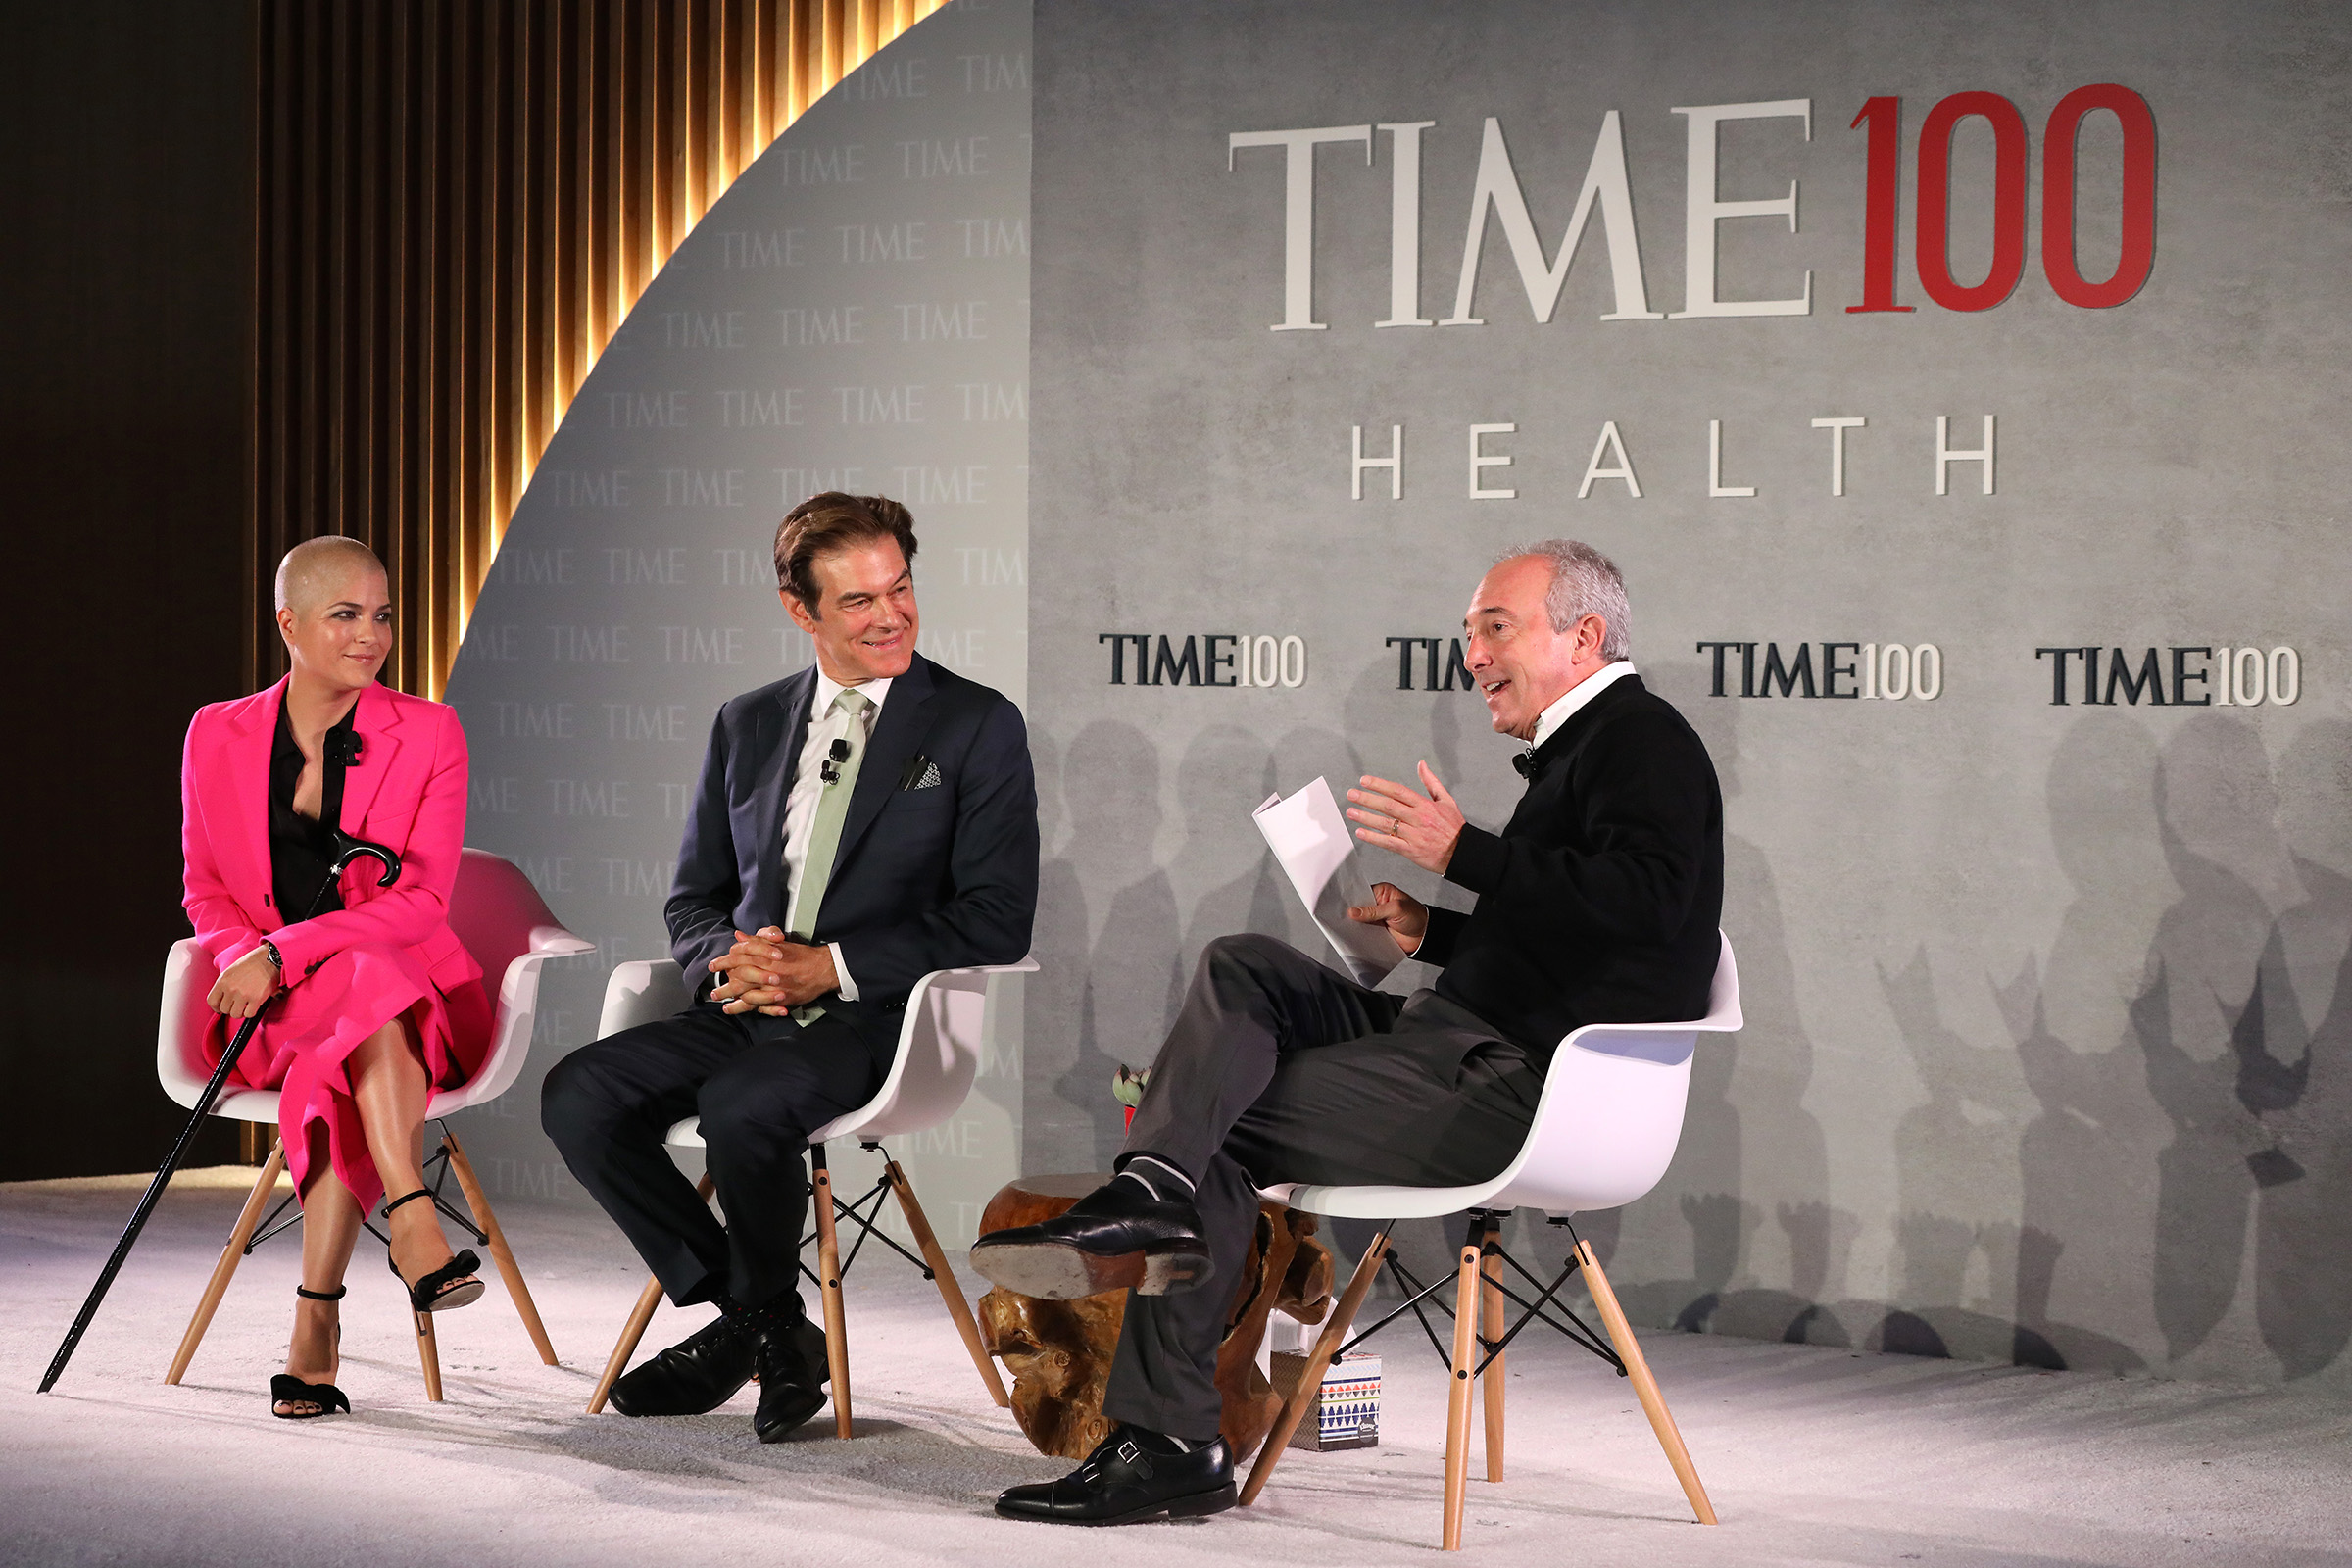 (L-R) Actor Selma Blair, Dr. Mehmet Oz and Dr. David Agus speak onstage during the TIME 100 Health Summit at Pier 17 in New York City on Oct. 17, 2019.